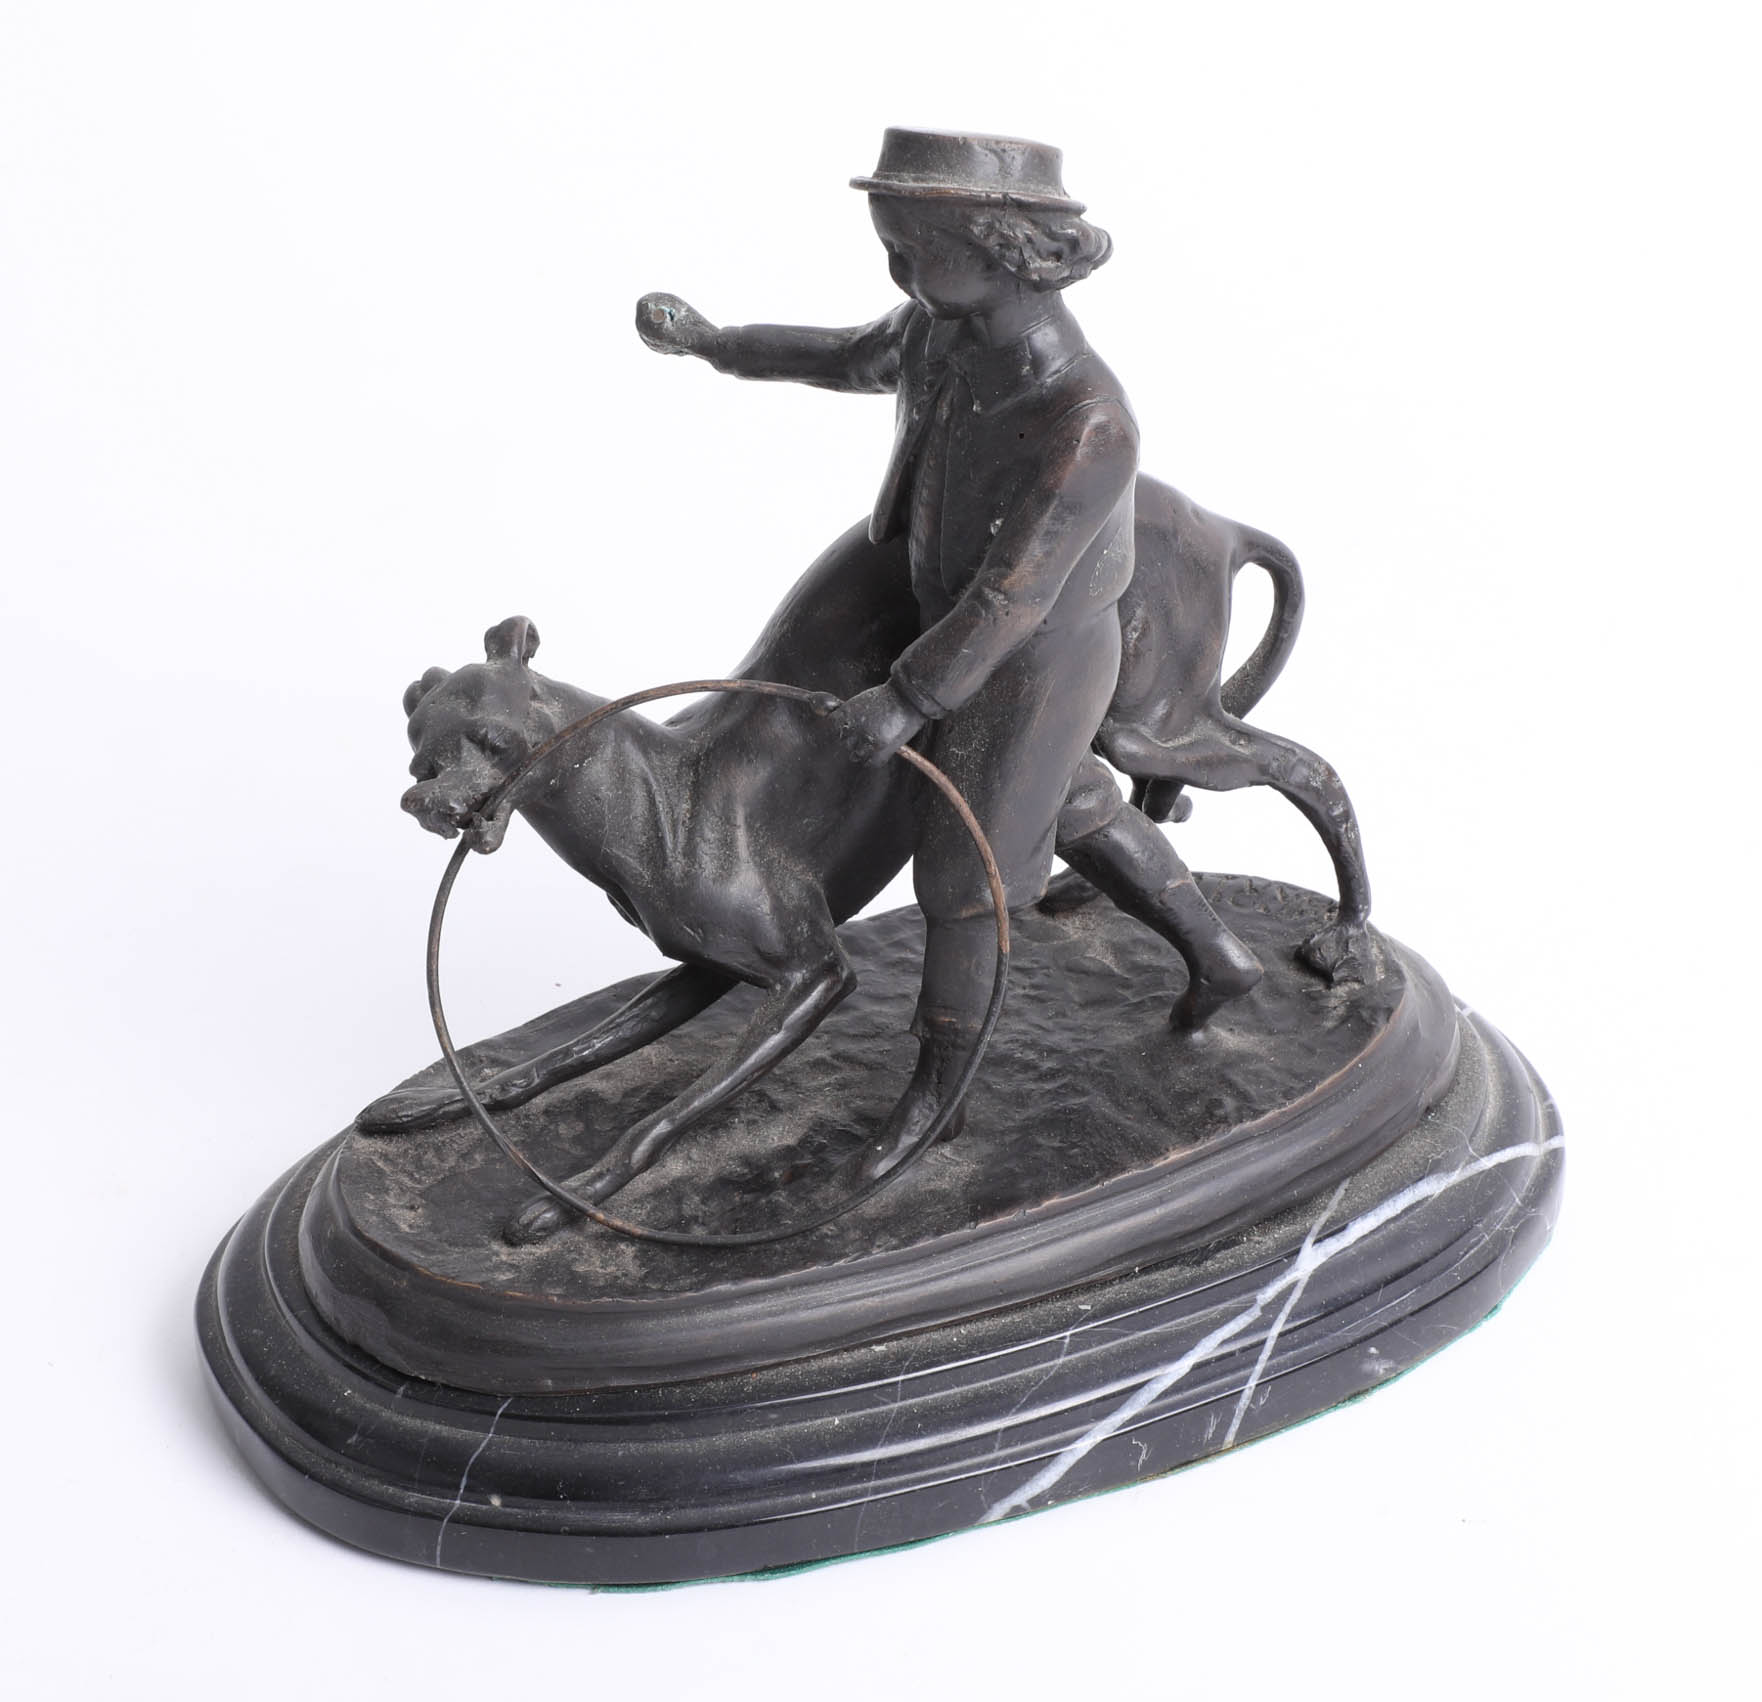 Lot 010 - After Barrie bronze sculpture of a girl walking a dog with a hoop on plinth, height 19cm.